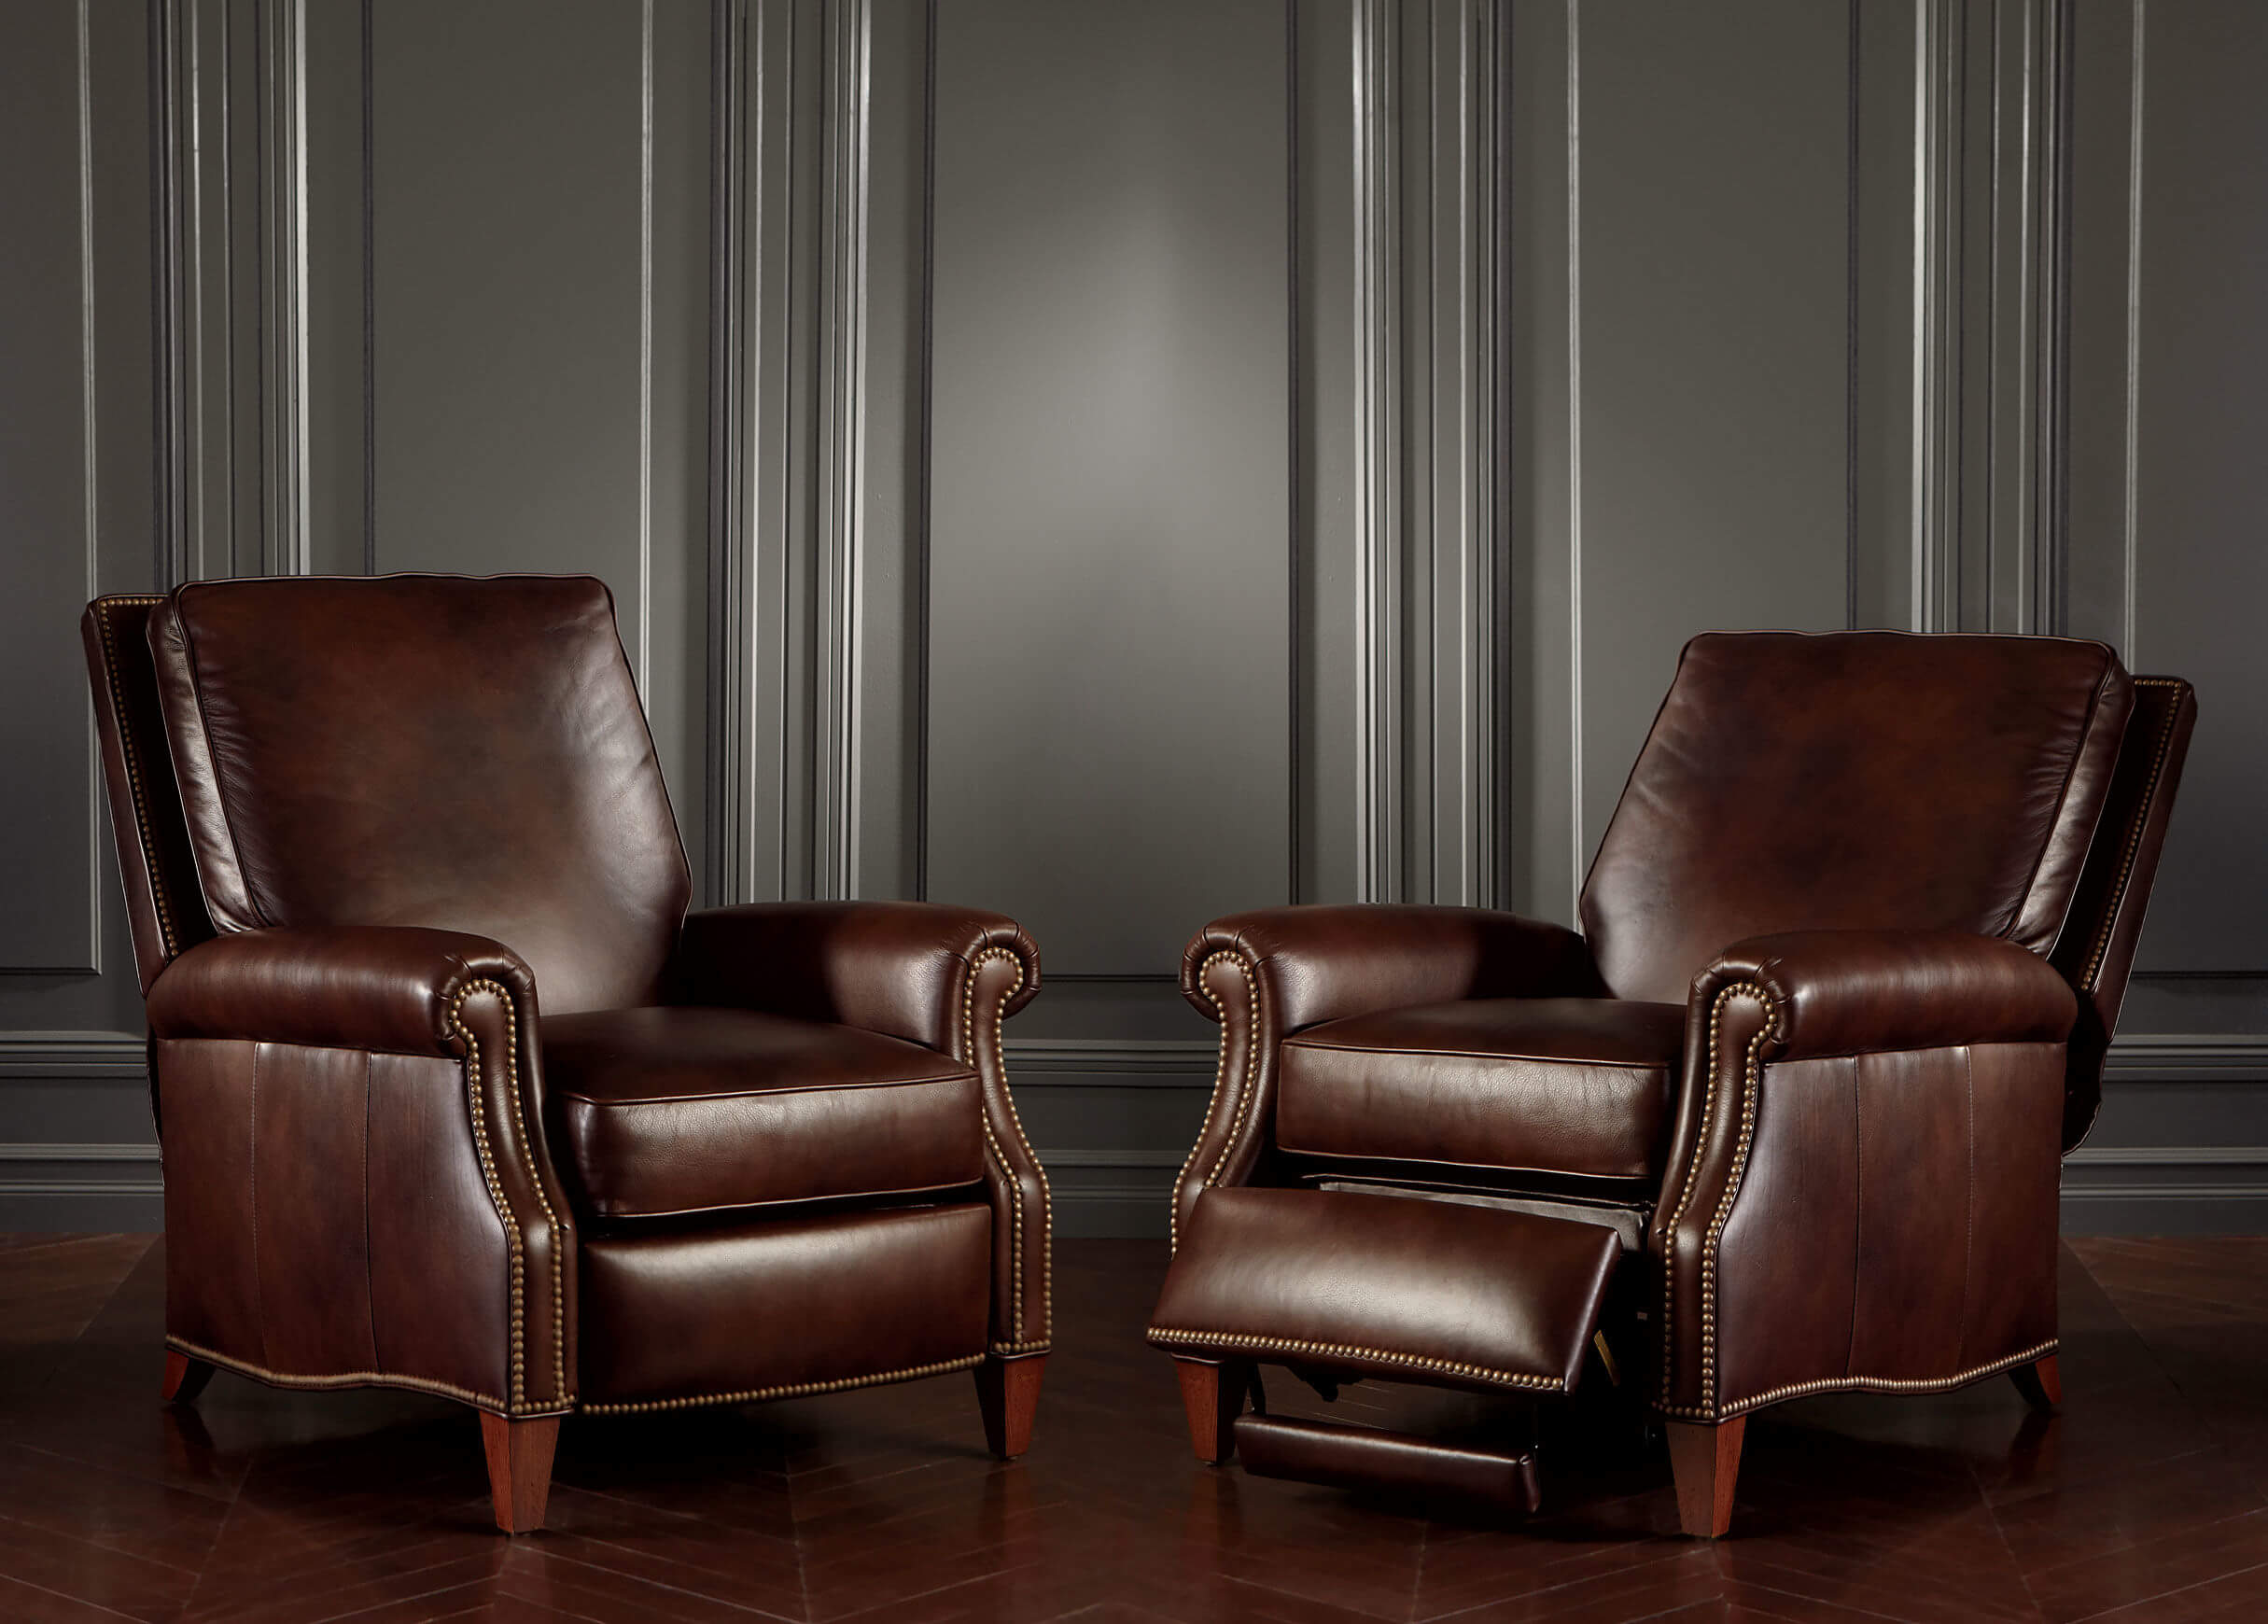 Best Rated Small Recliners Top 8 Best Luxury Leather Arm Chair Recliners Sit In Style Improb